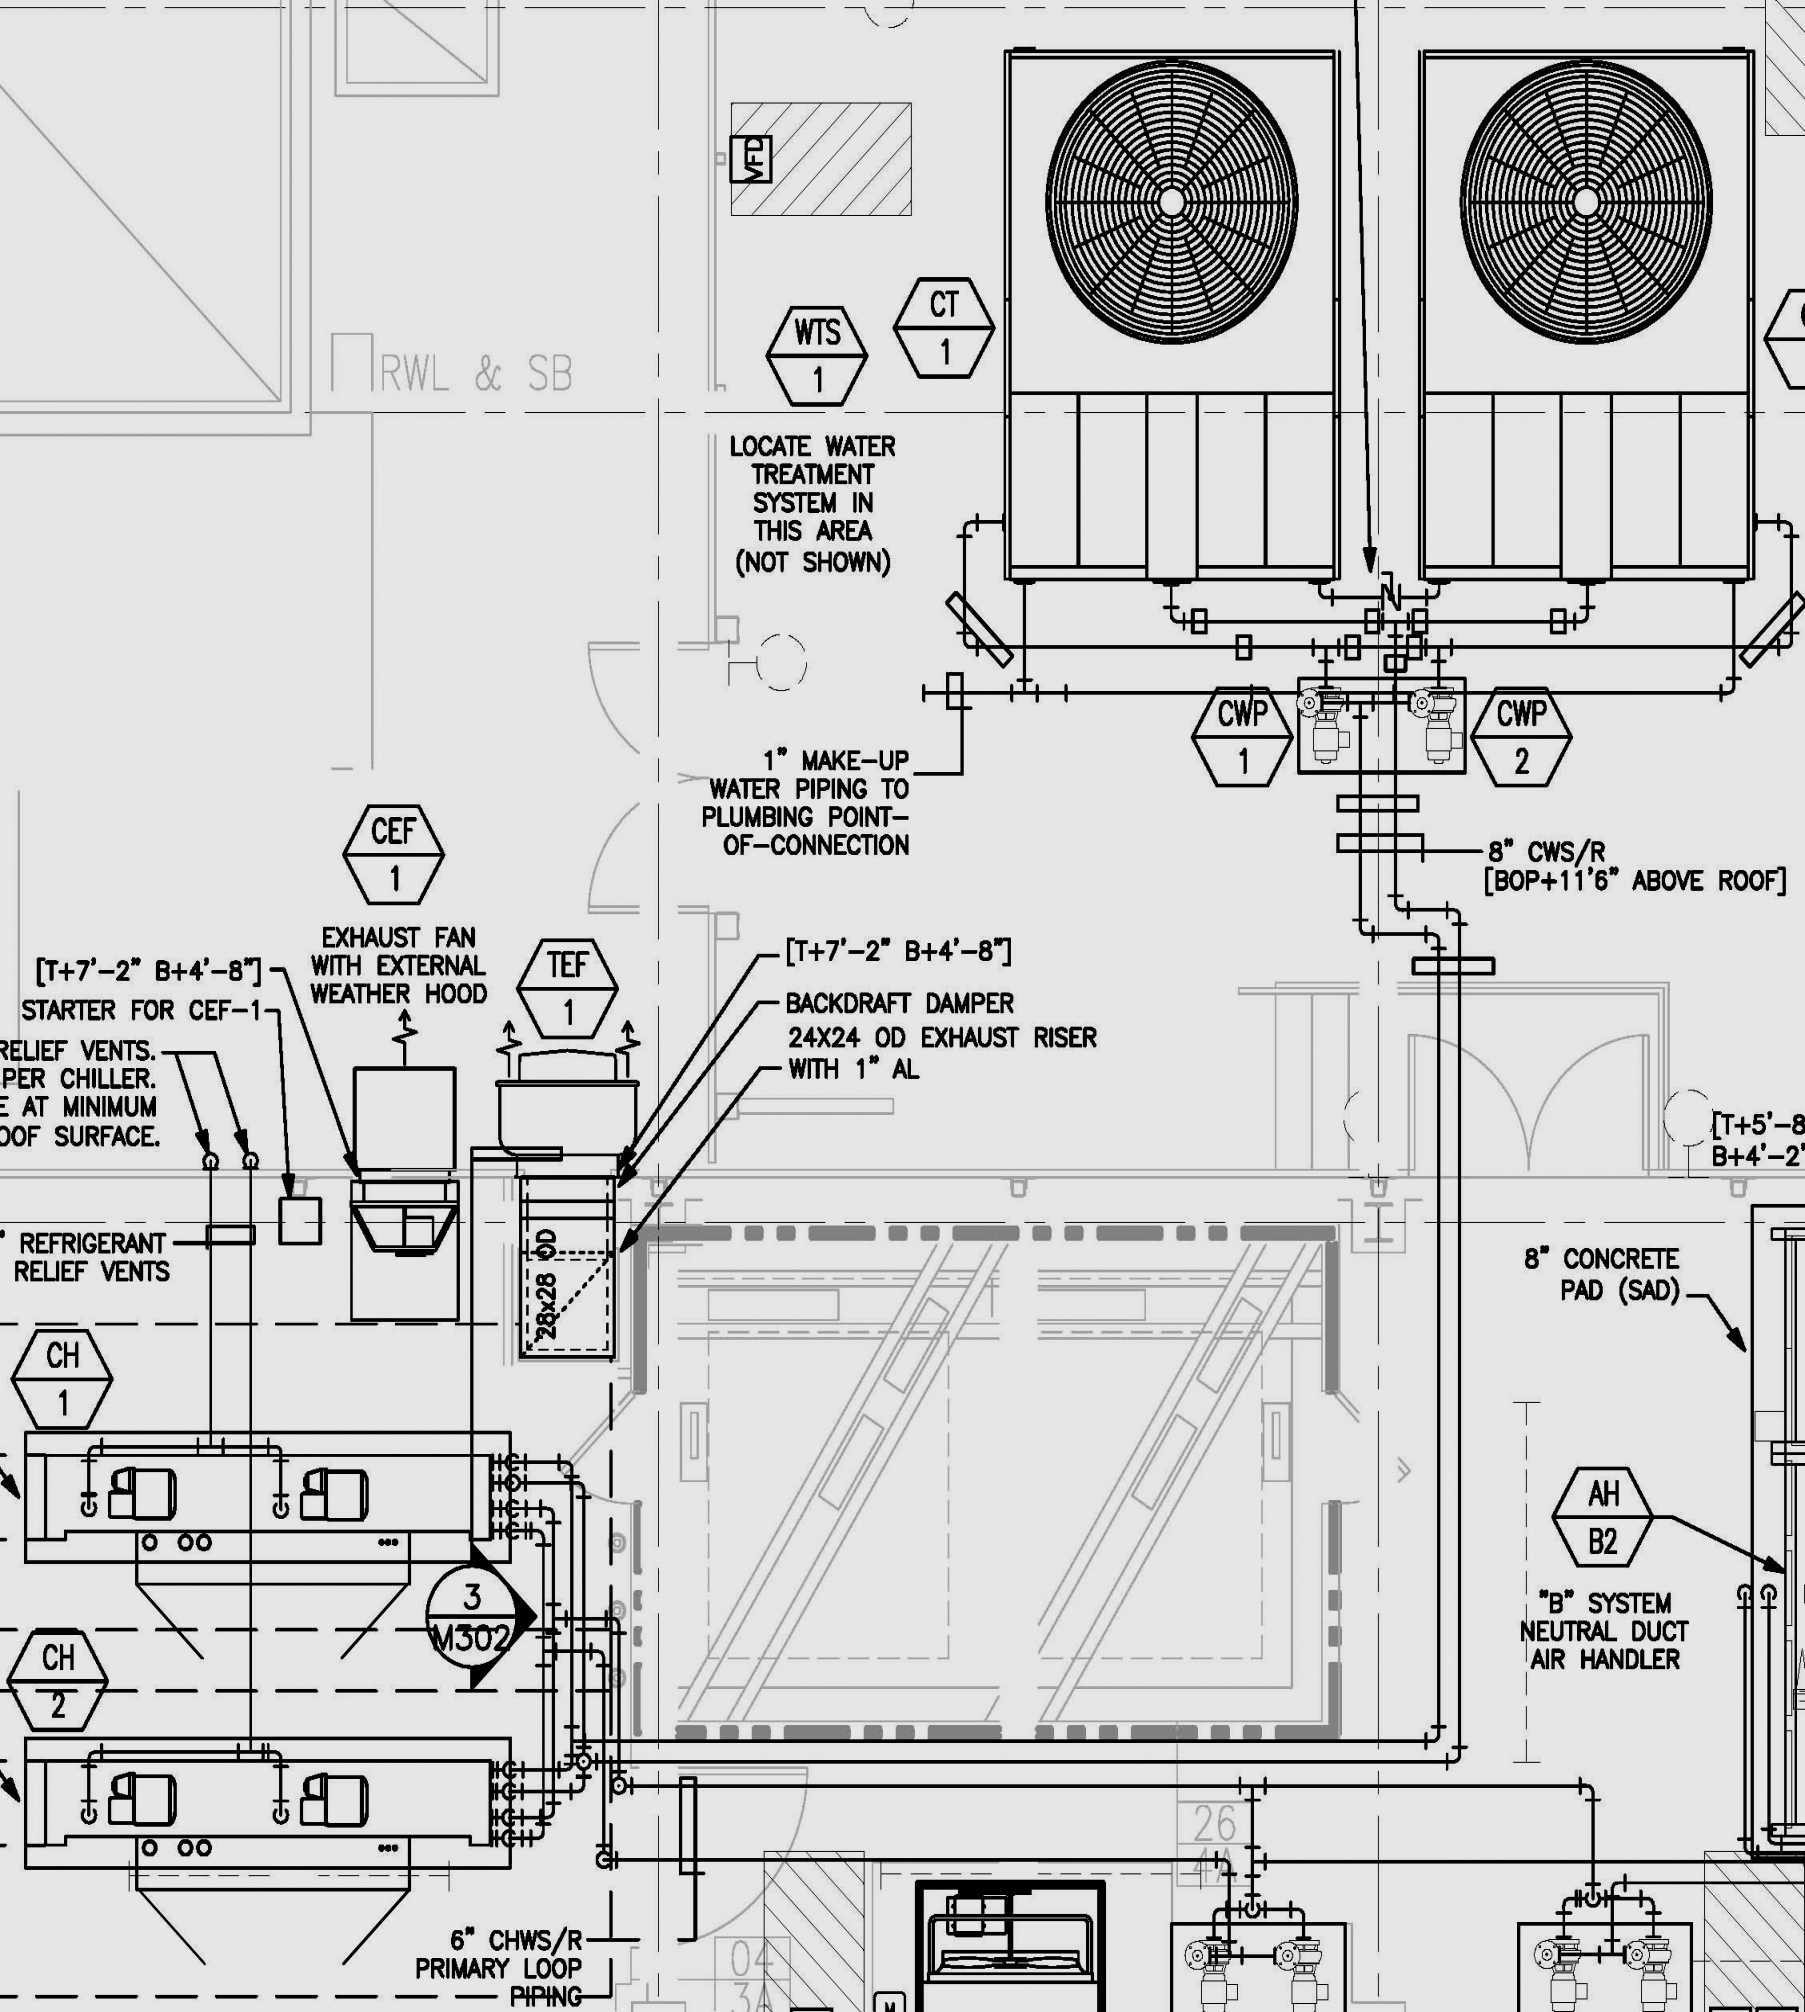 20 Wiring Diagram